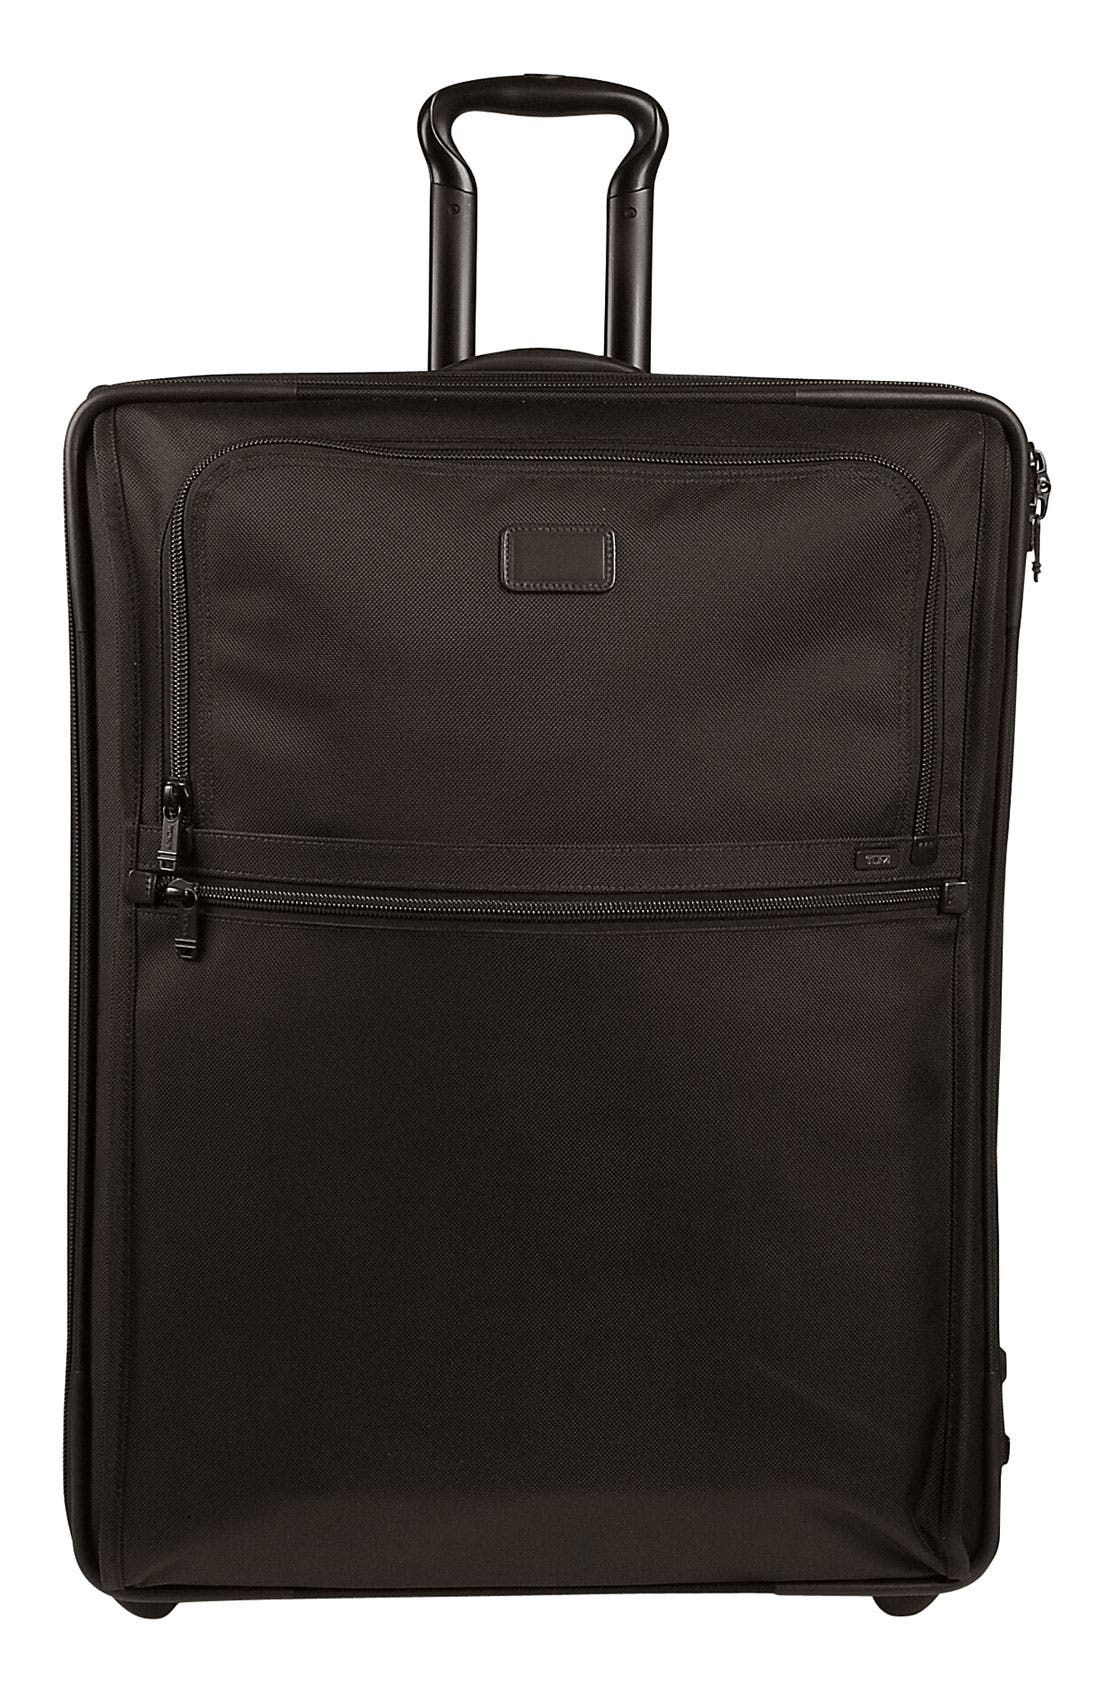 Alternate Image 1 Selected - Tumi 'Alpha - Medium' Wheeled Expandable Bag